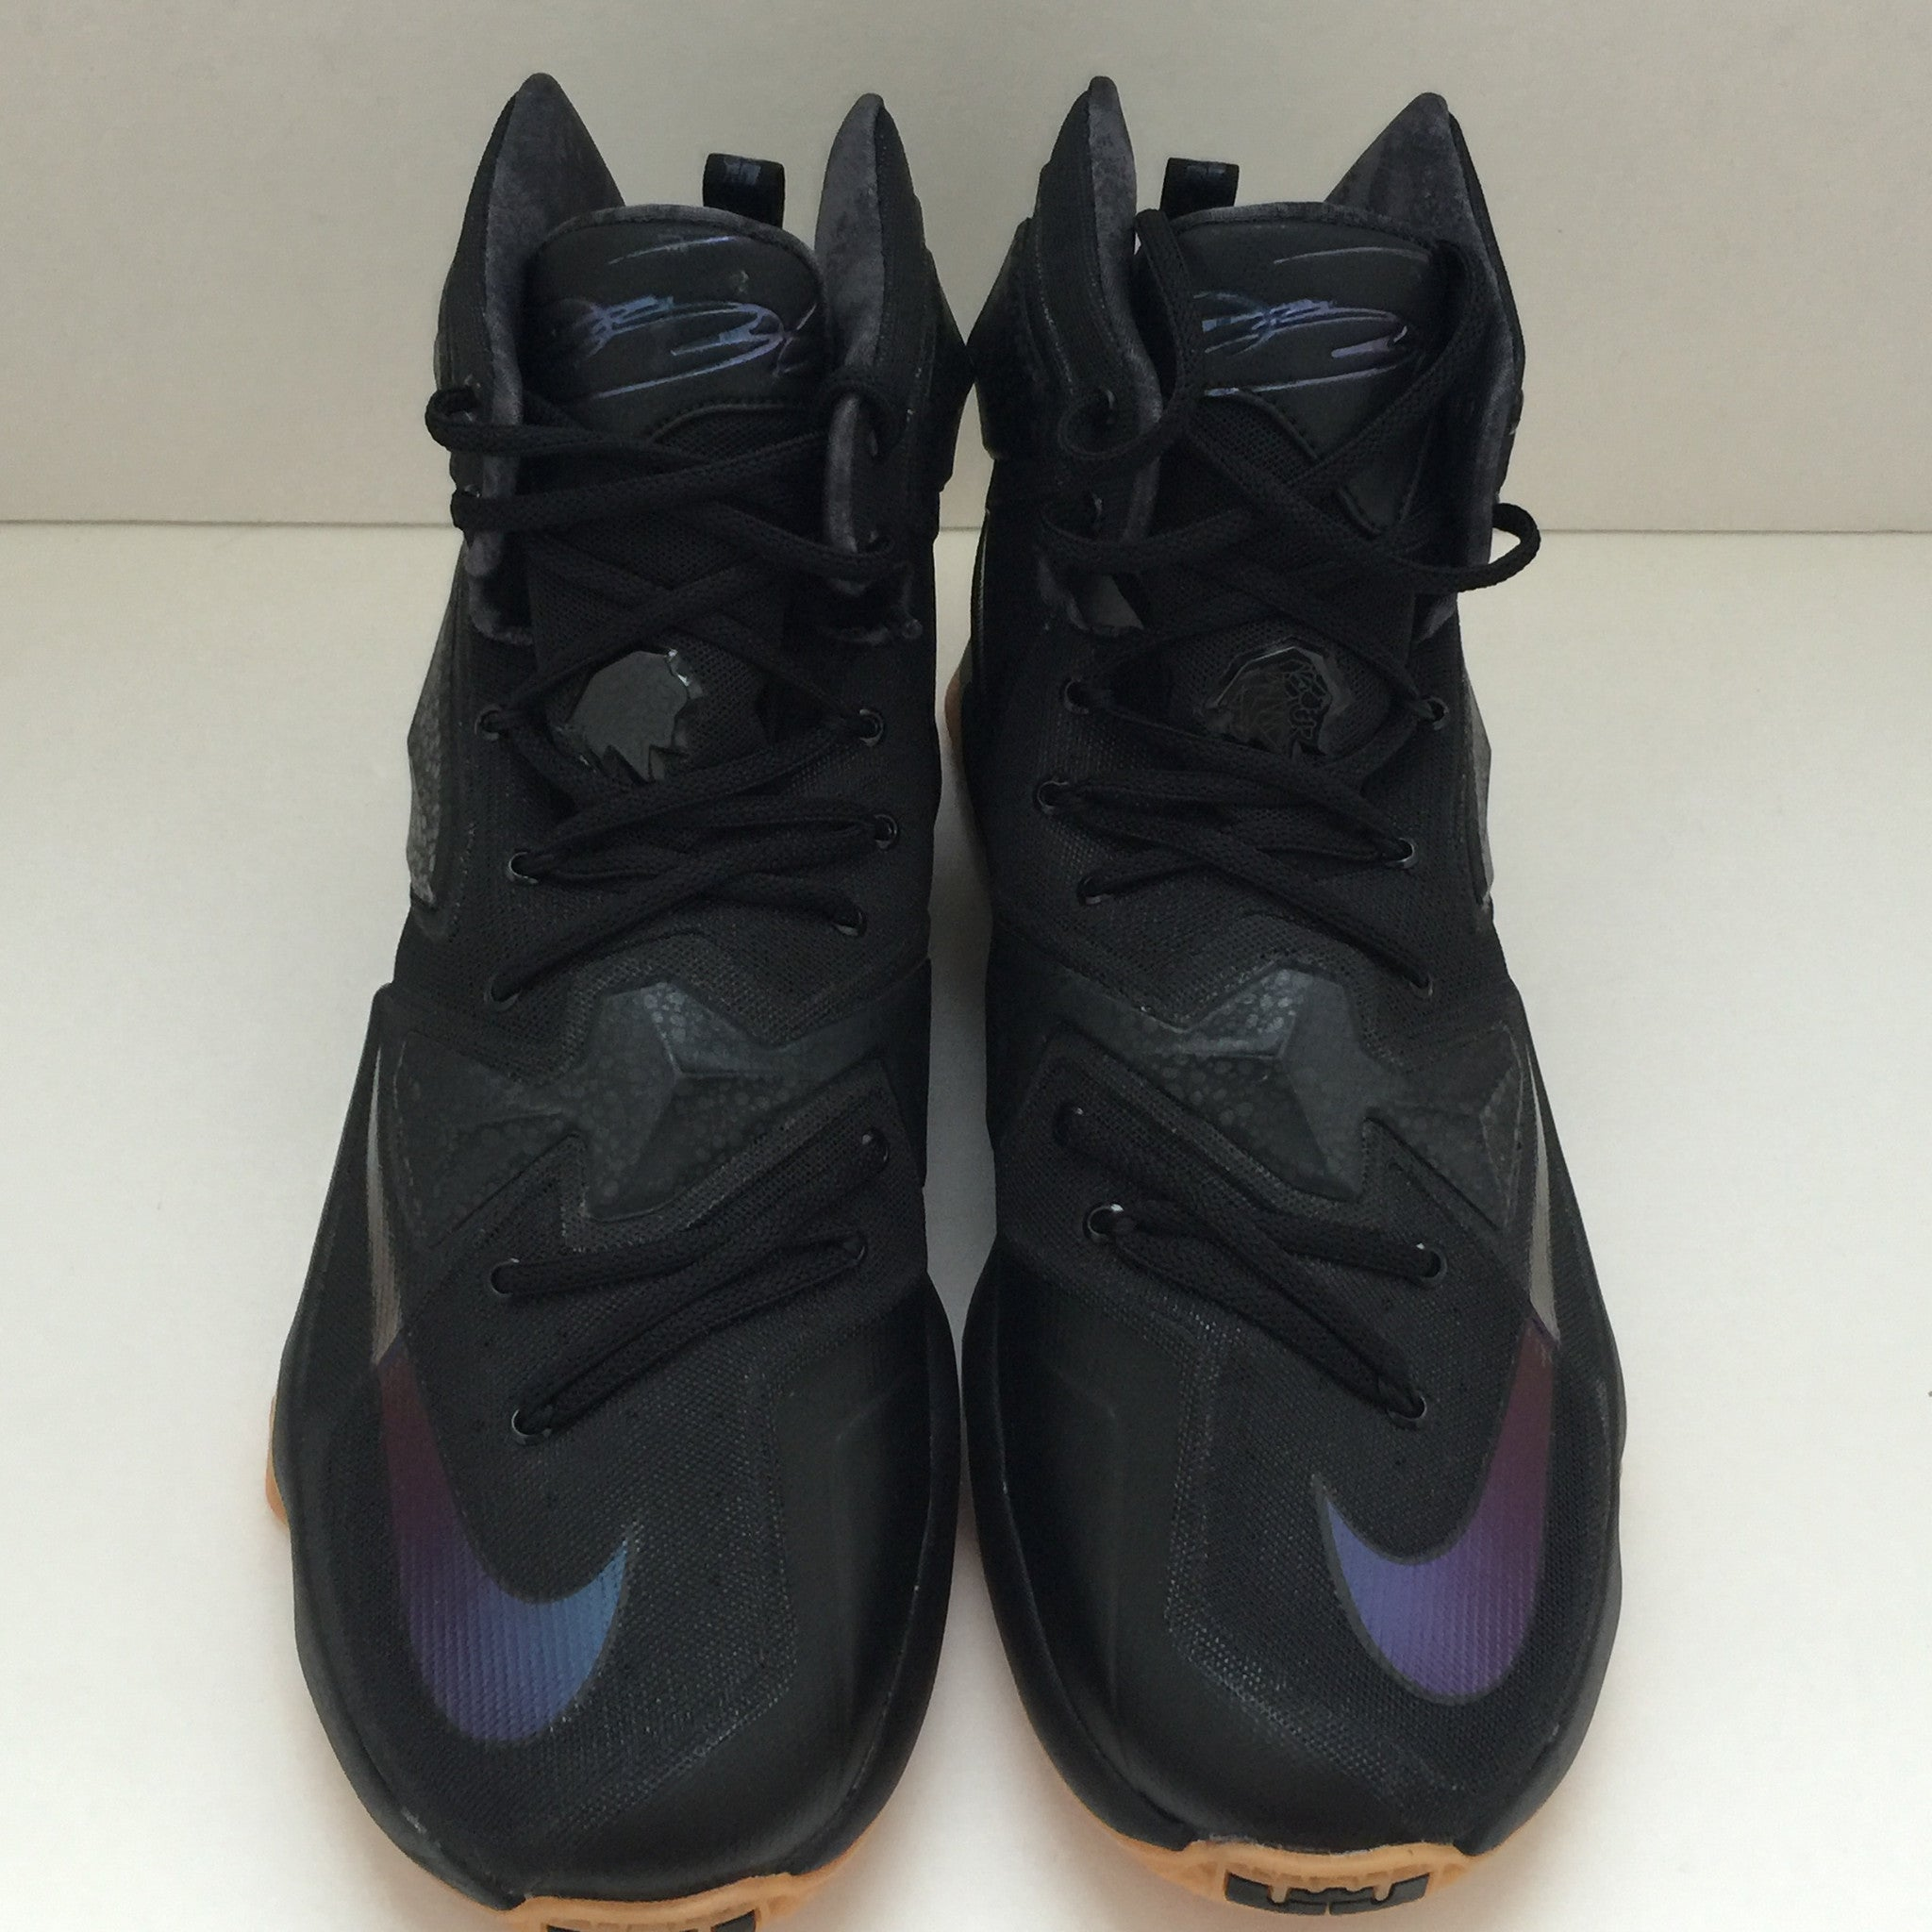 DS Nike Lebron 13 XIII Black Lion Gum Size 13.5 - DOPEFOOT  - 3